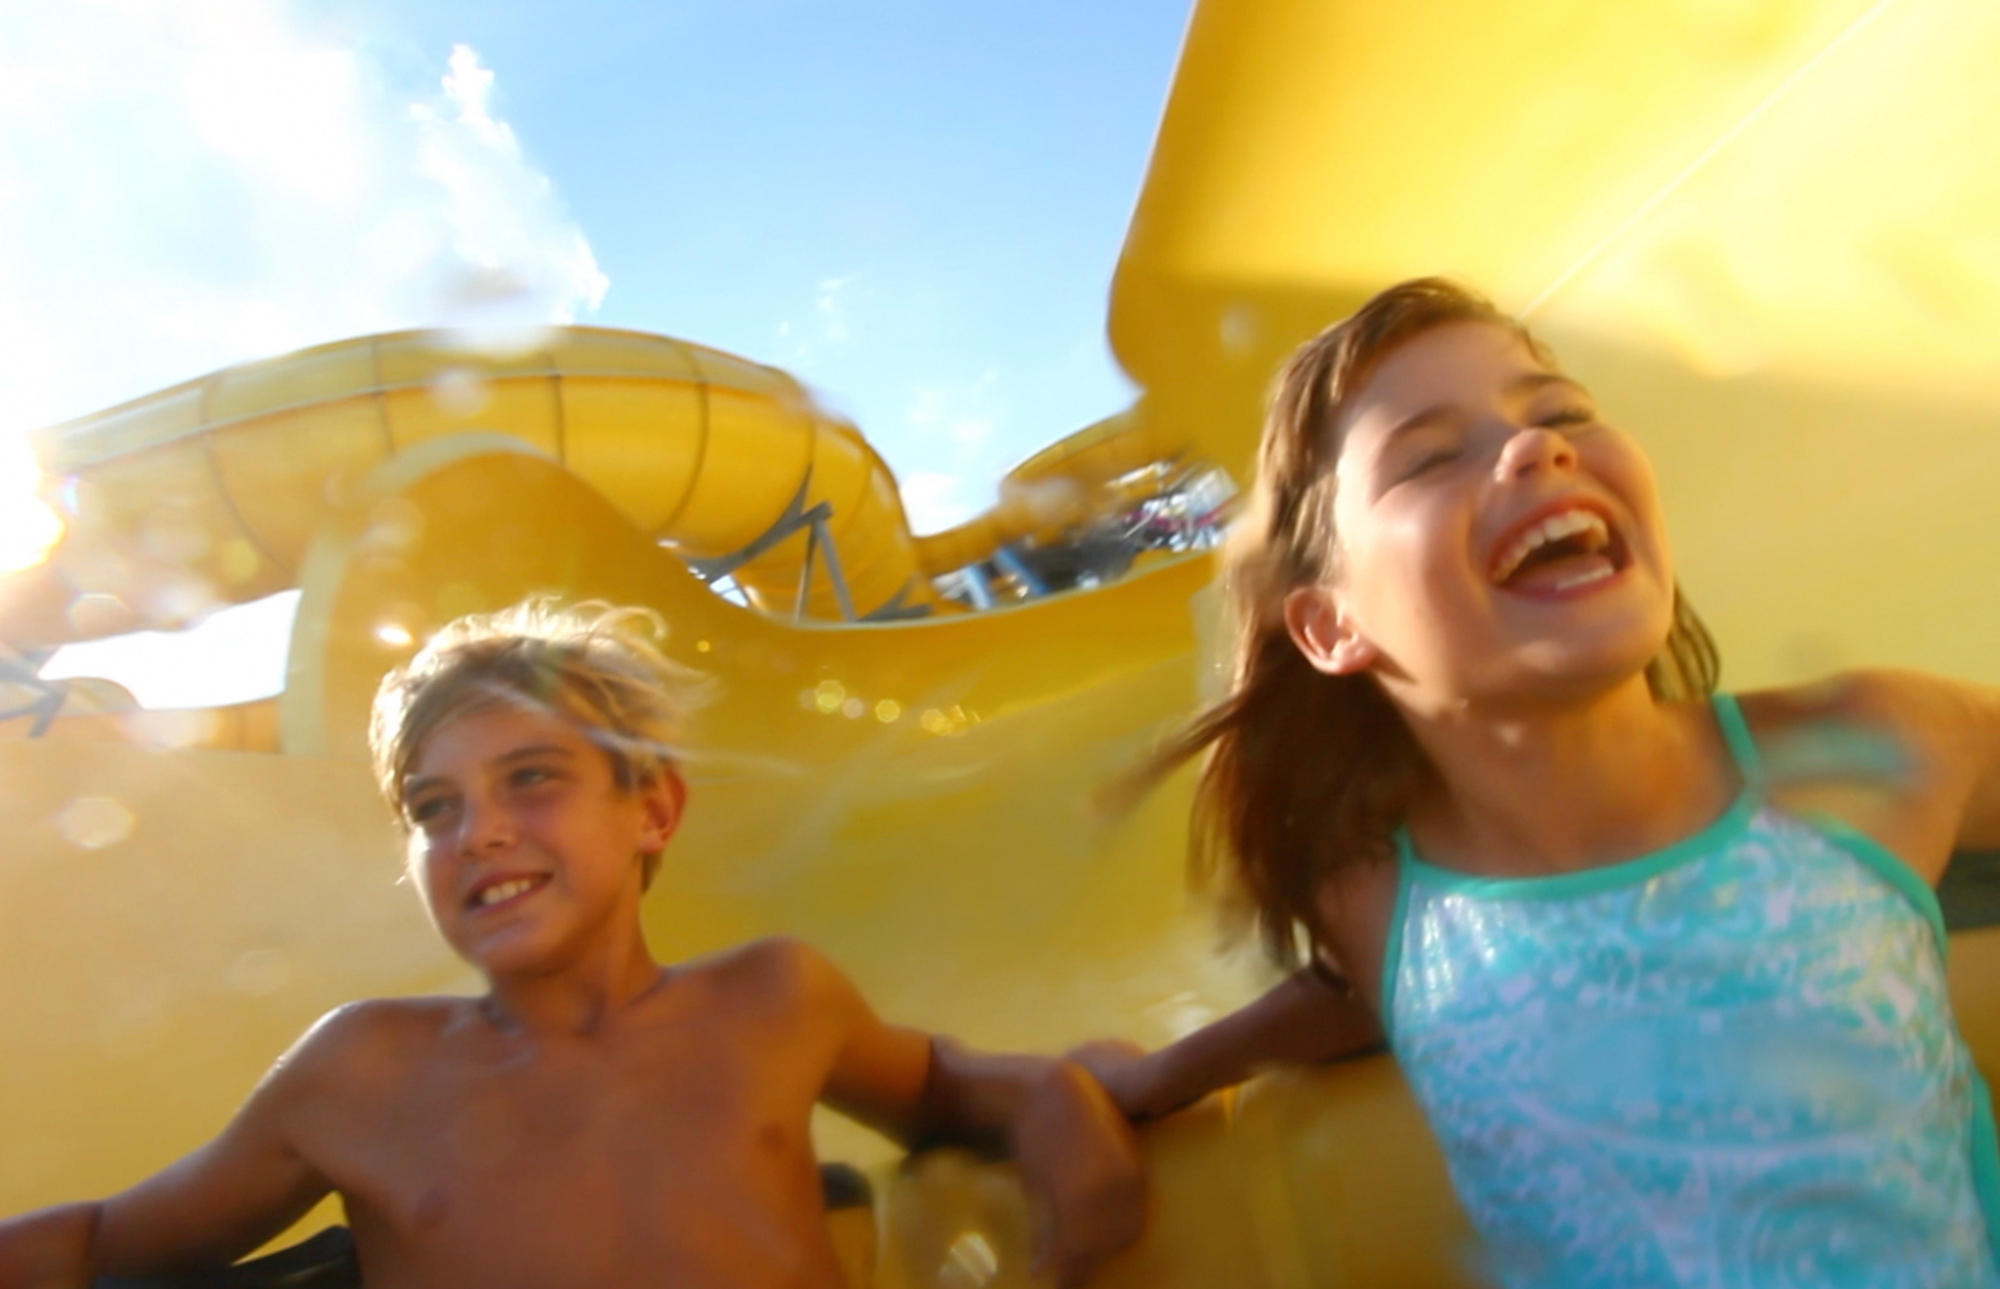 Kids sliding down water slide